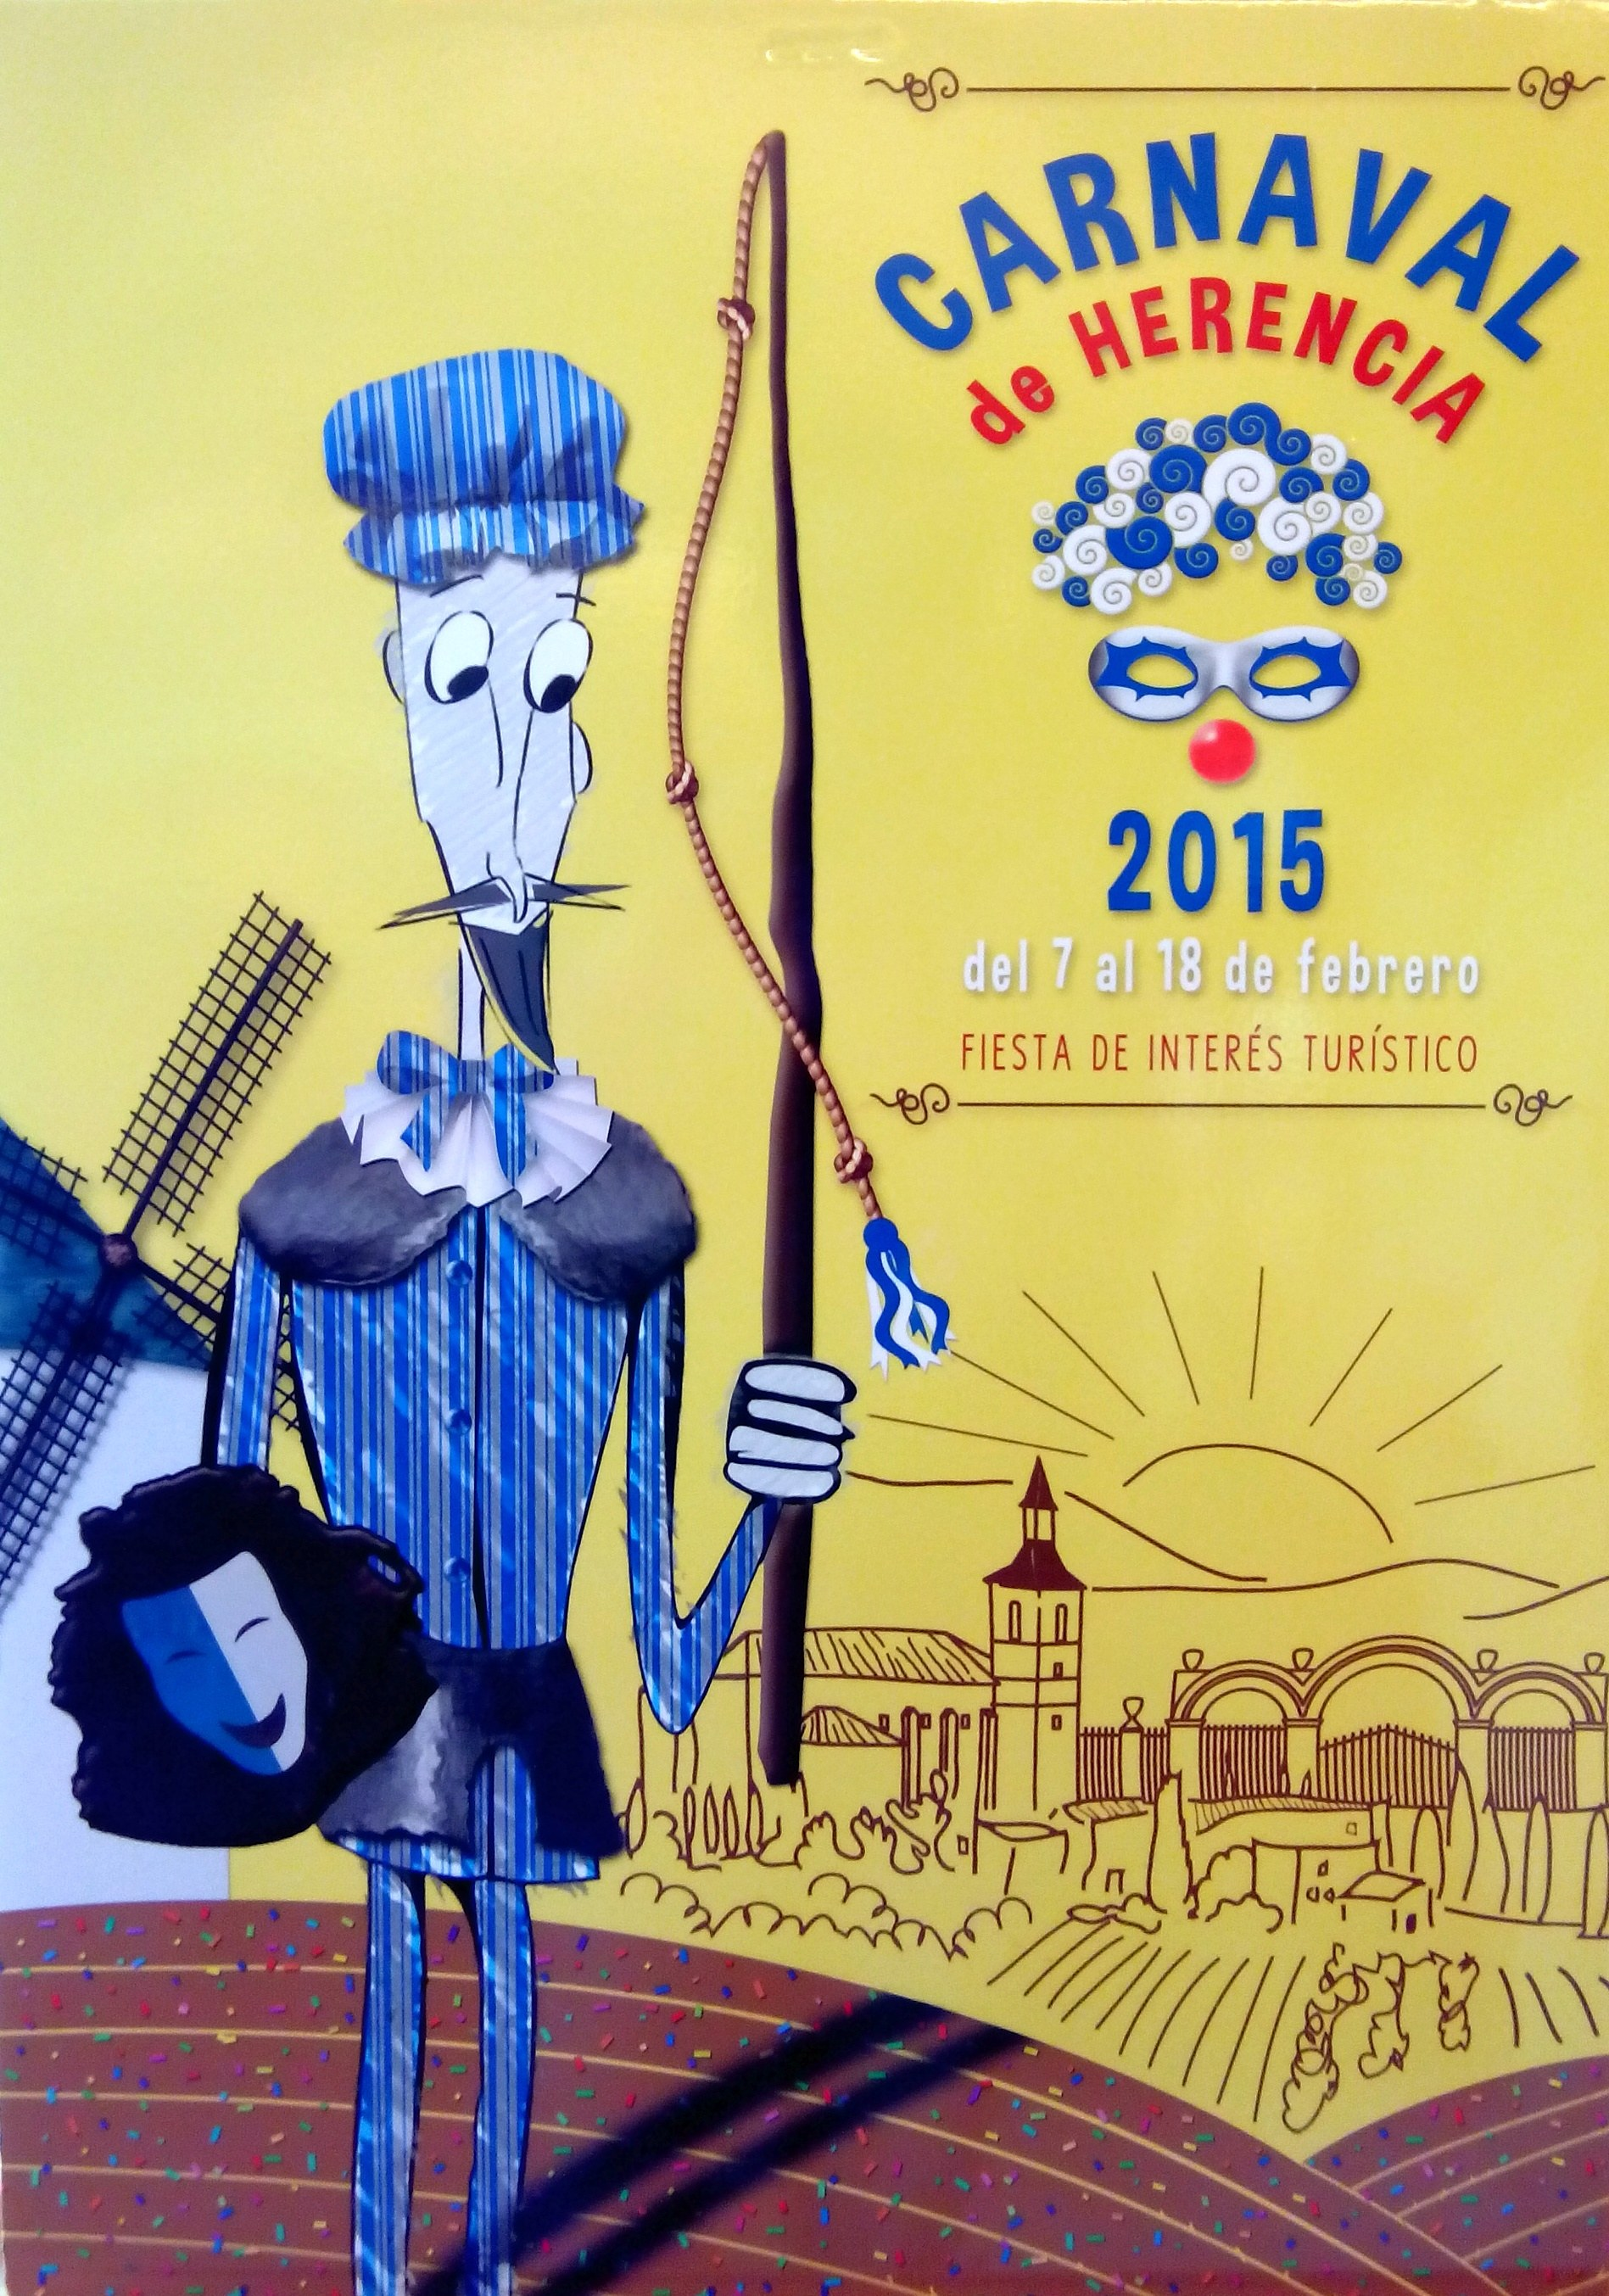 herencia_cartel_carnaval_herencia_2015